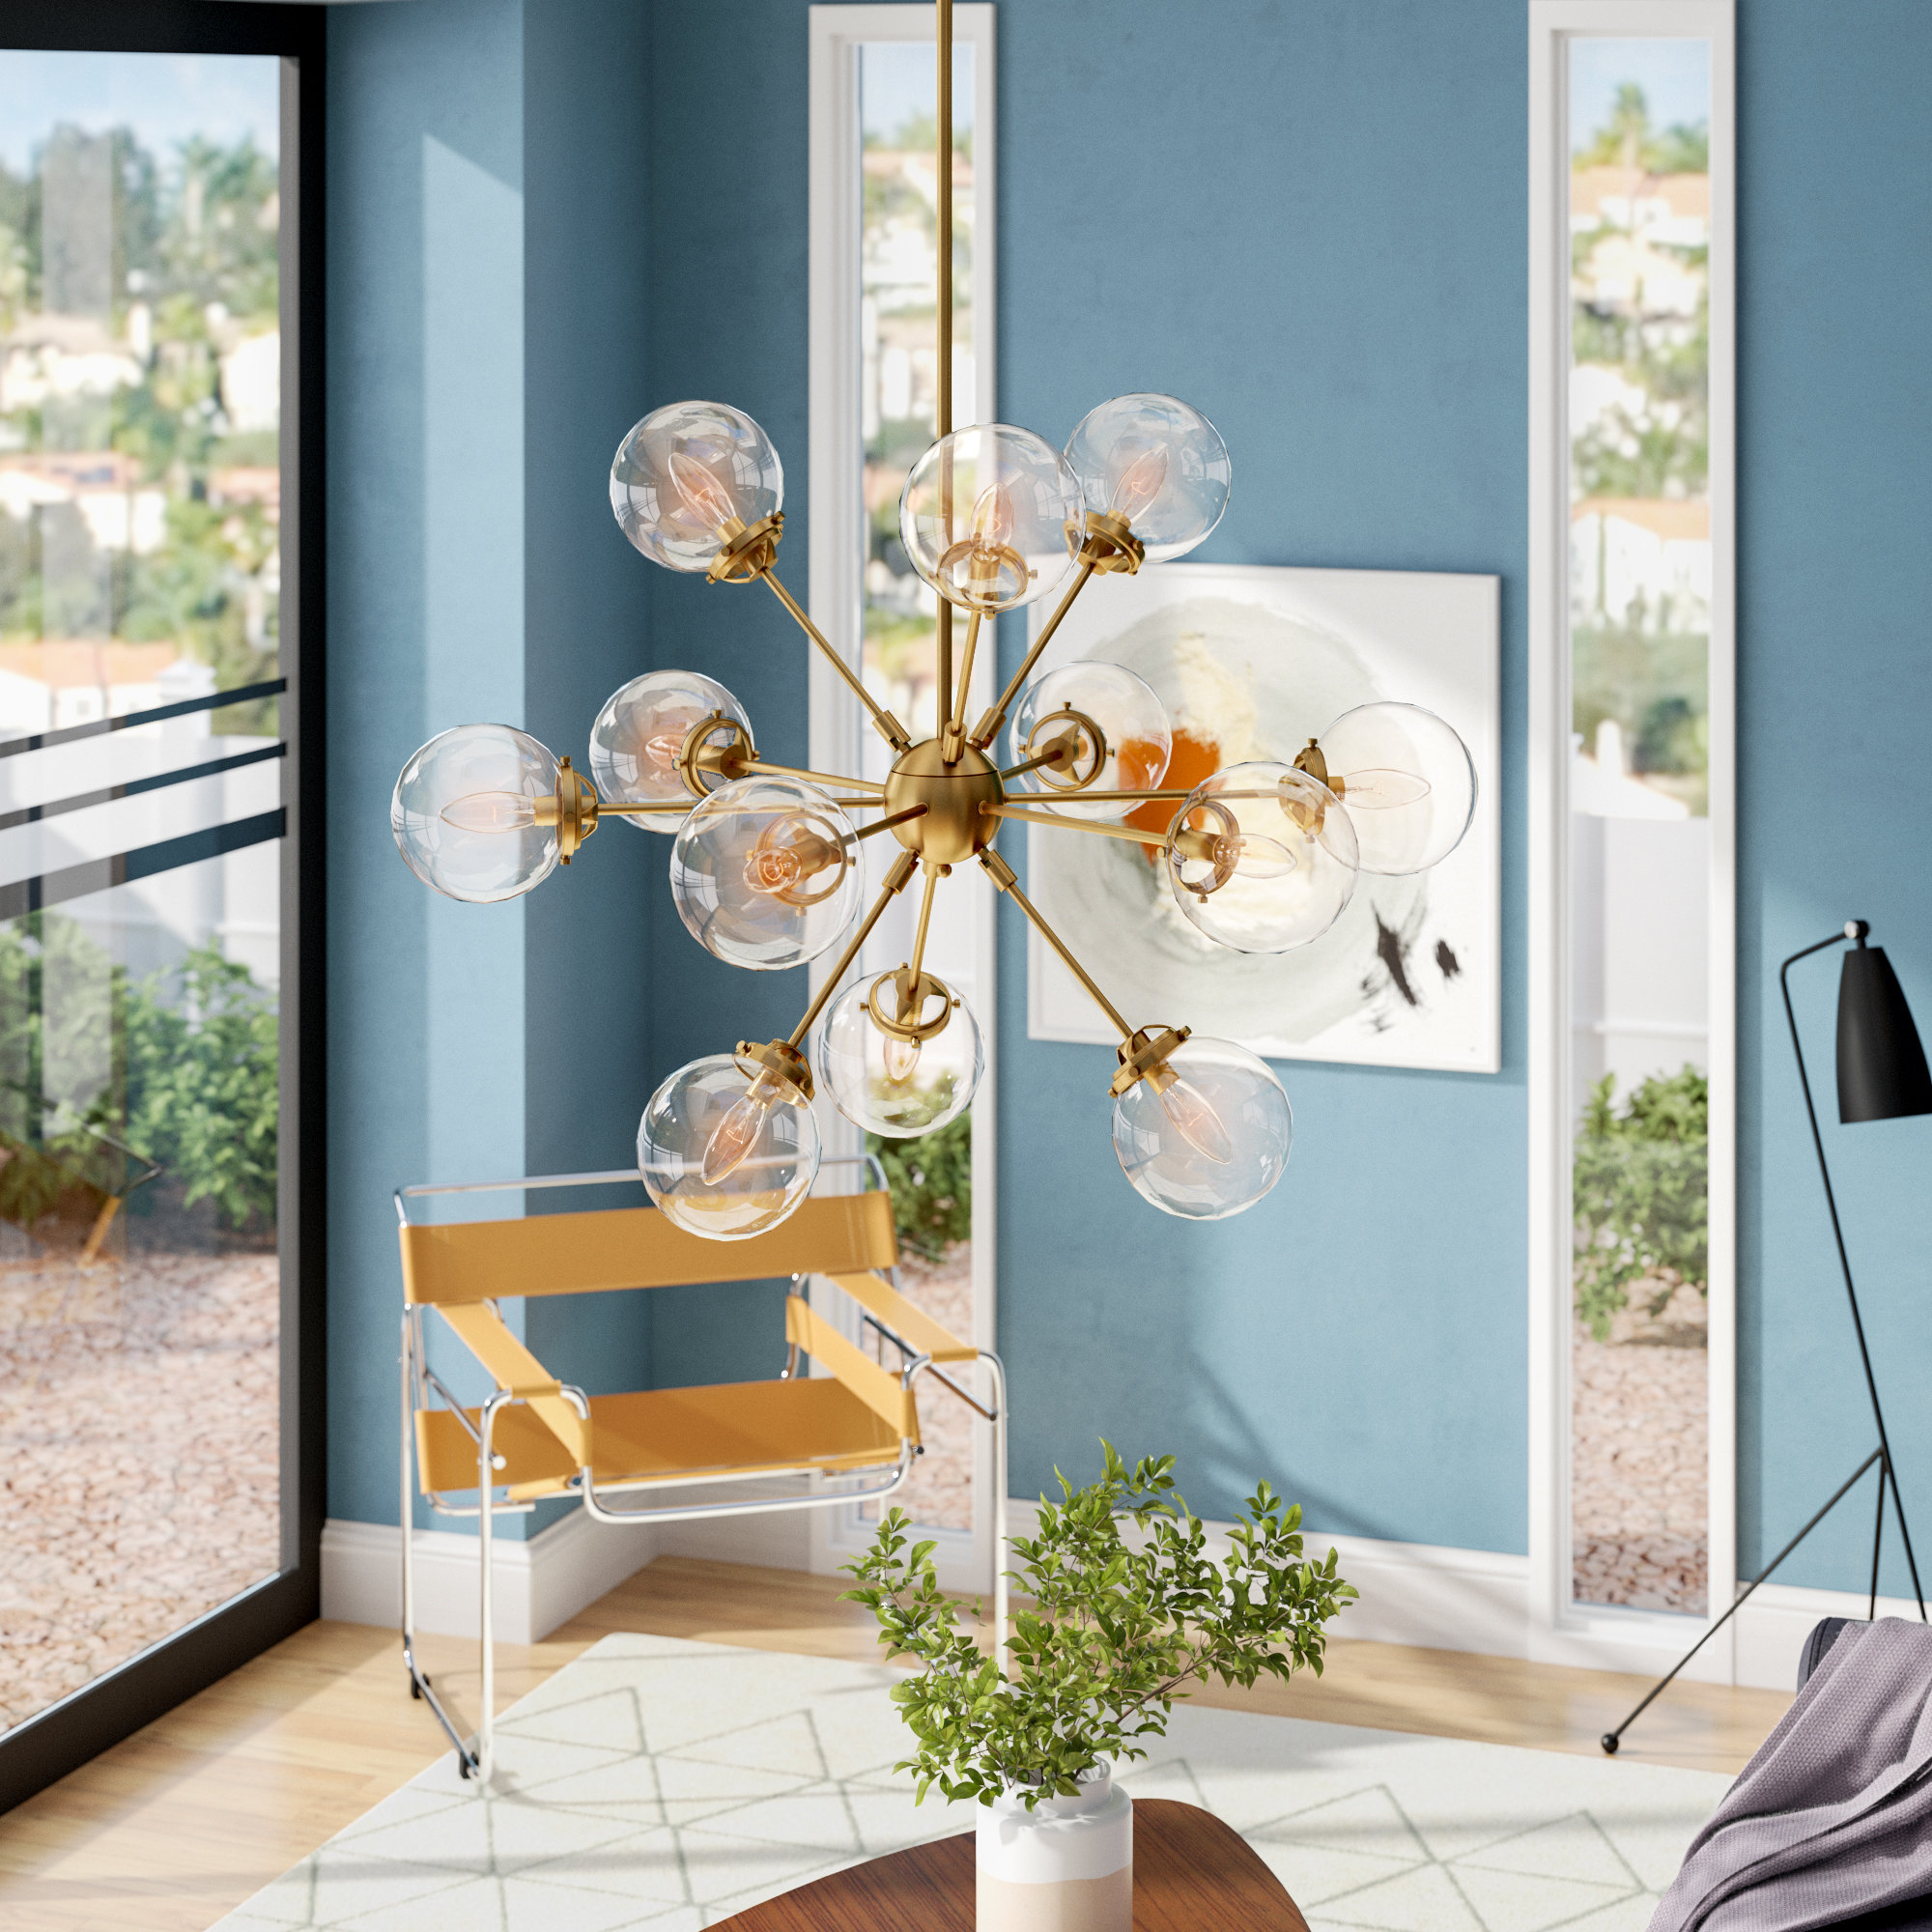 2019 Asher 12 Light Sputnik Chandelier Throughout Corona 12 Light Sputnik Chandeliers (Gallery 19 of 20)